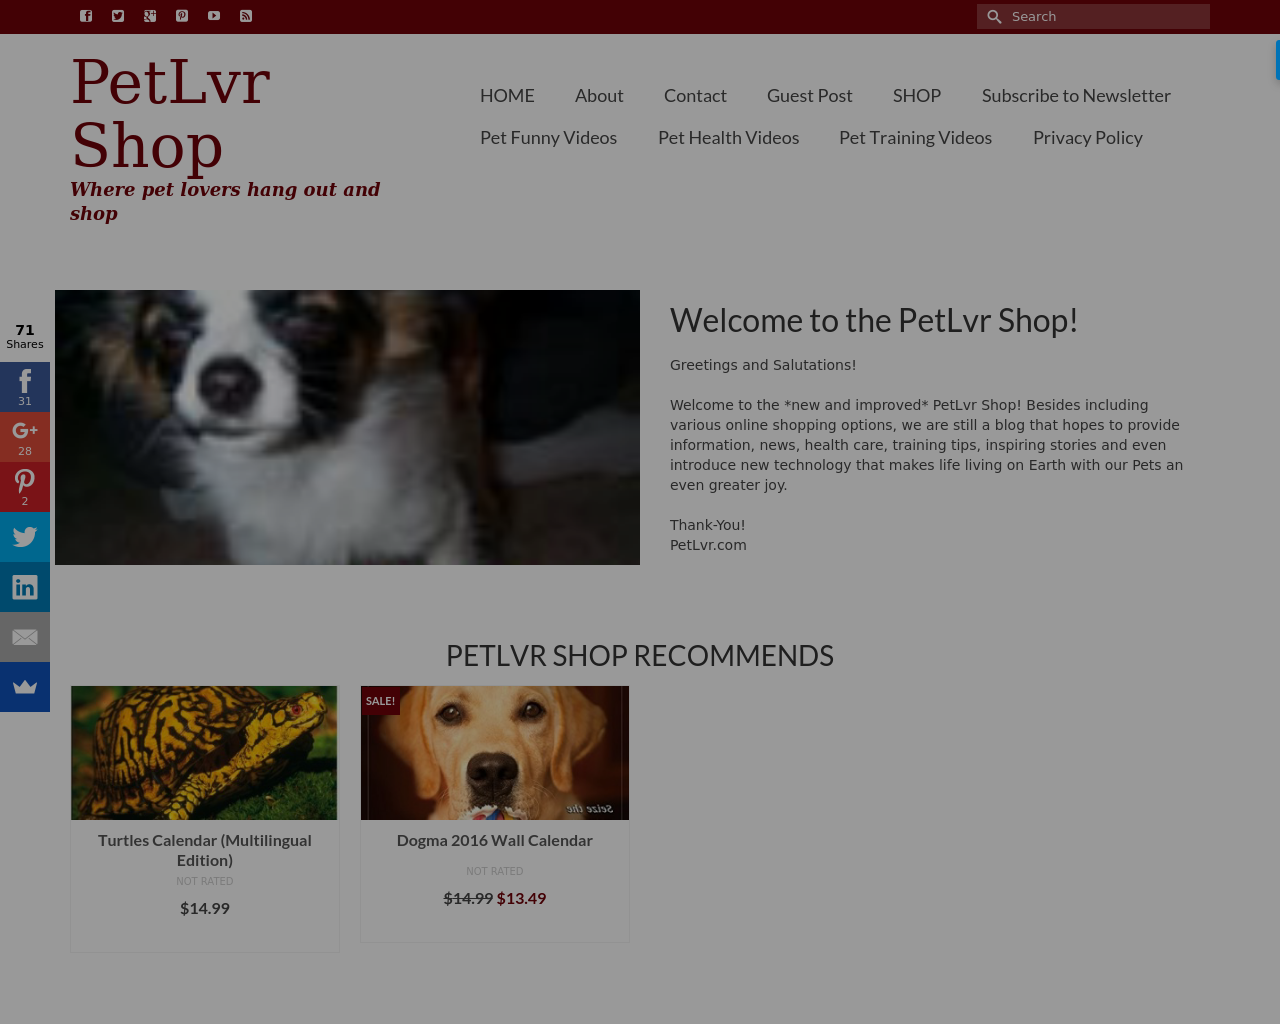 PetLvr-Blog-For-Pet-Lovers-Advertising-Reviews-Pricing